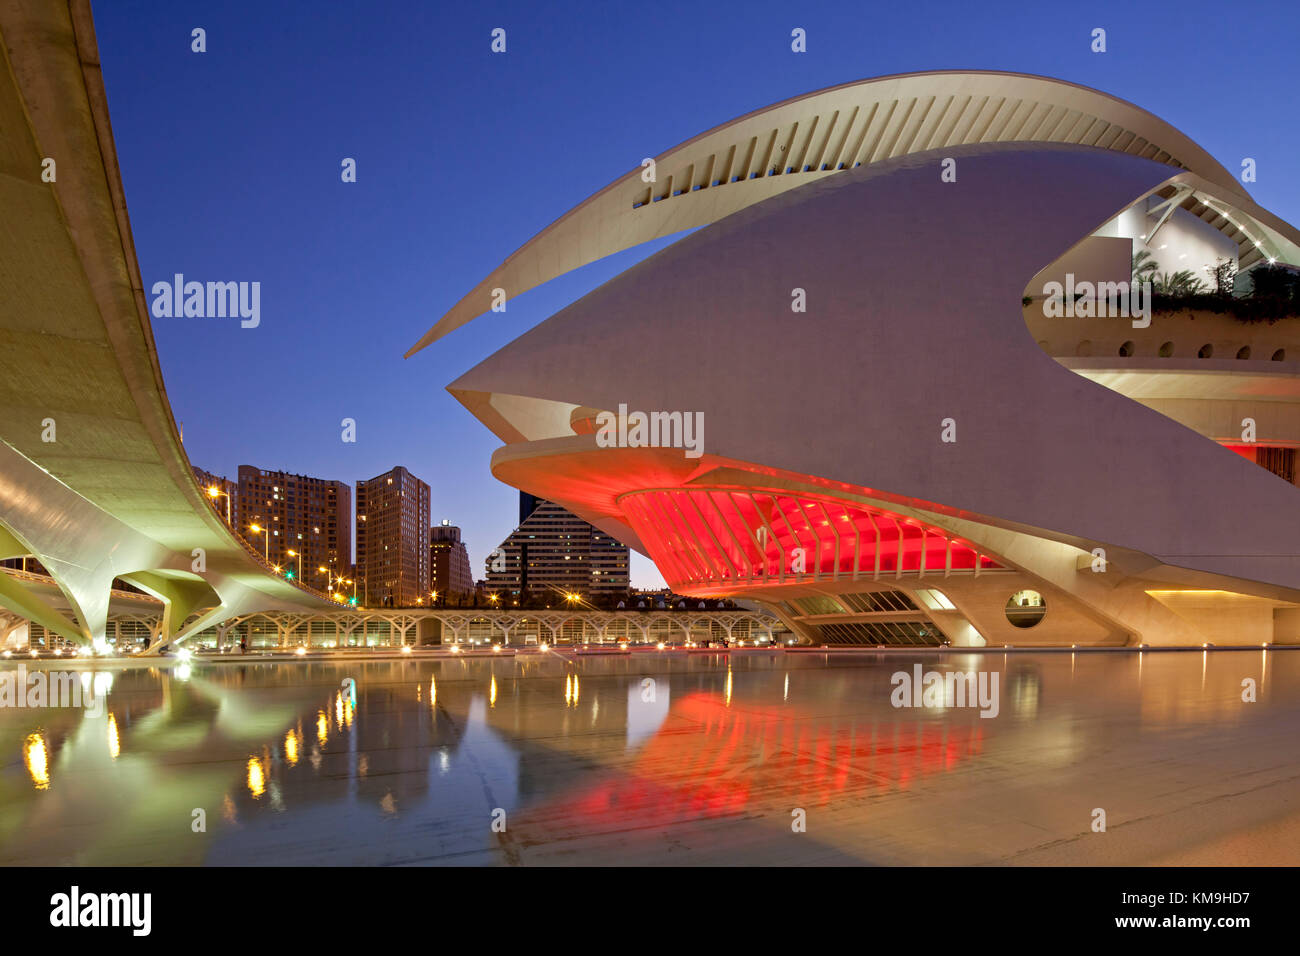 The Palau de les Arts Reina Sofia by Calatrava, , Valencia, Spain Stock Photo